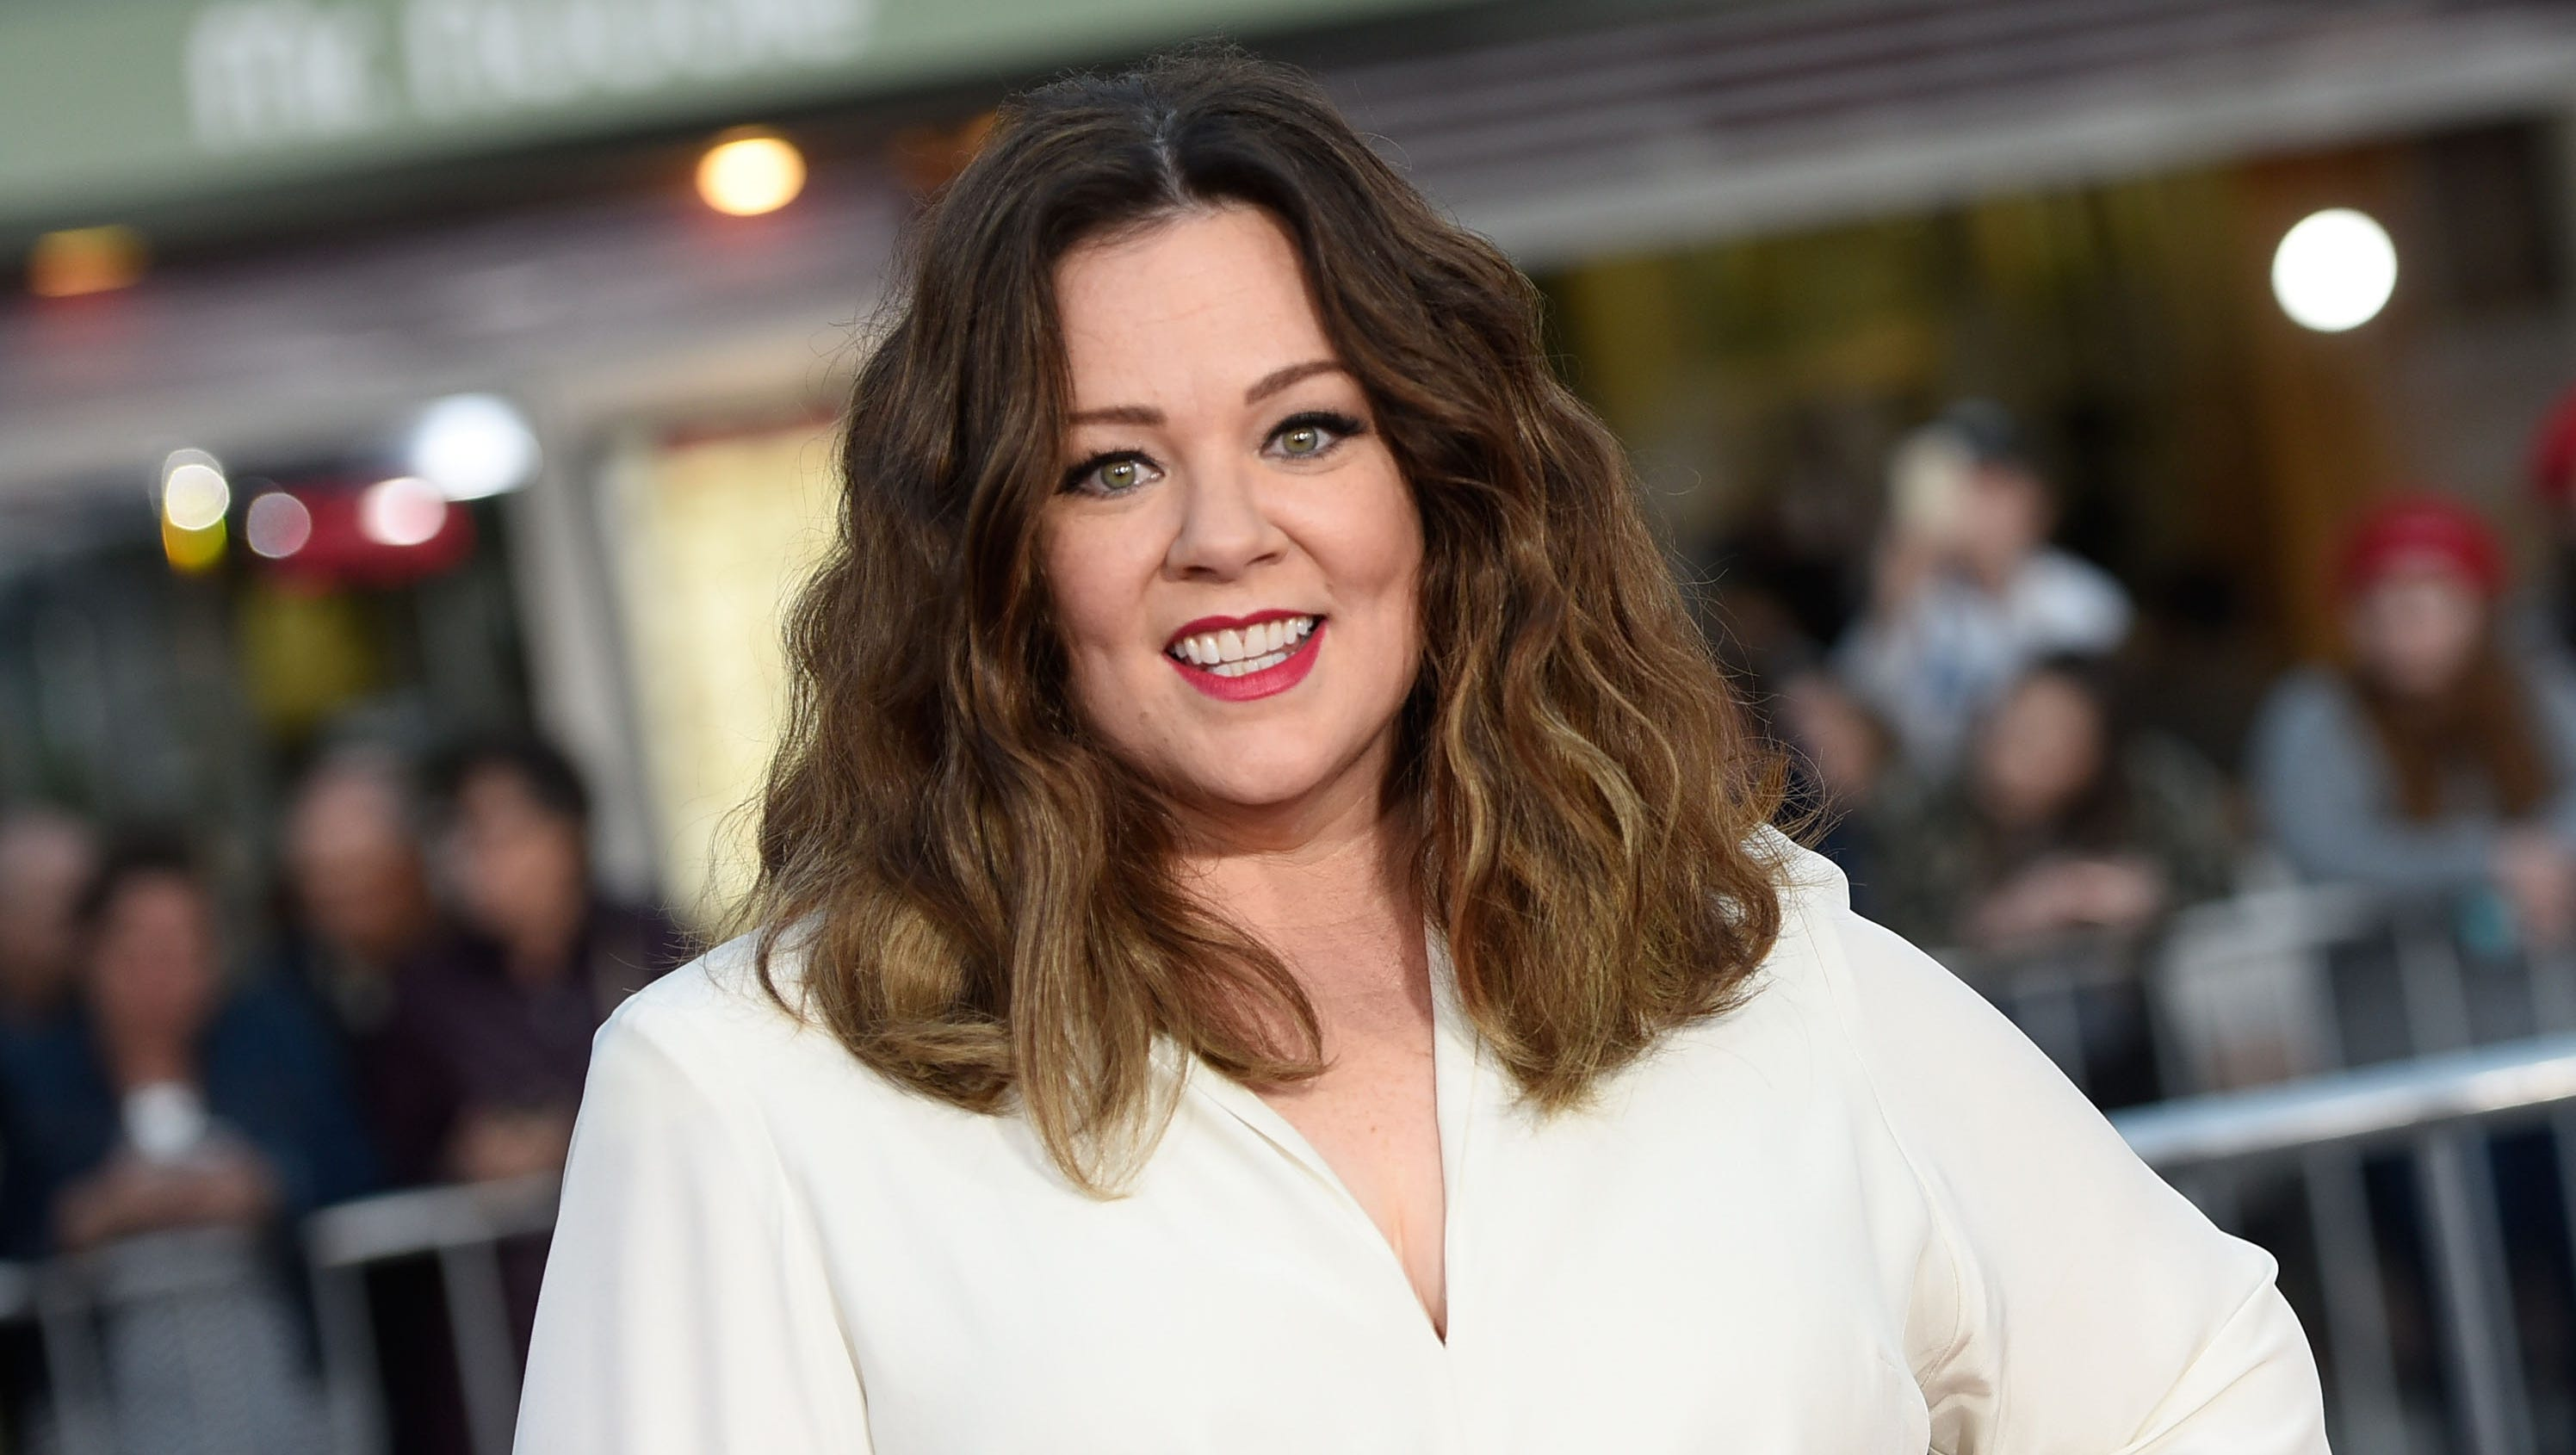 It Took 15 Years For Melissa Mccarthy To Get To Be The Boss